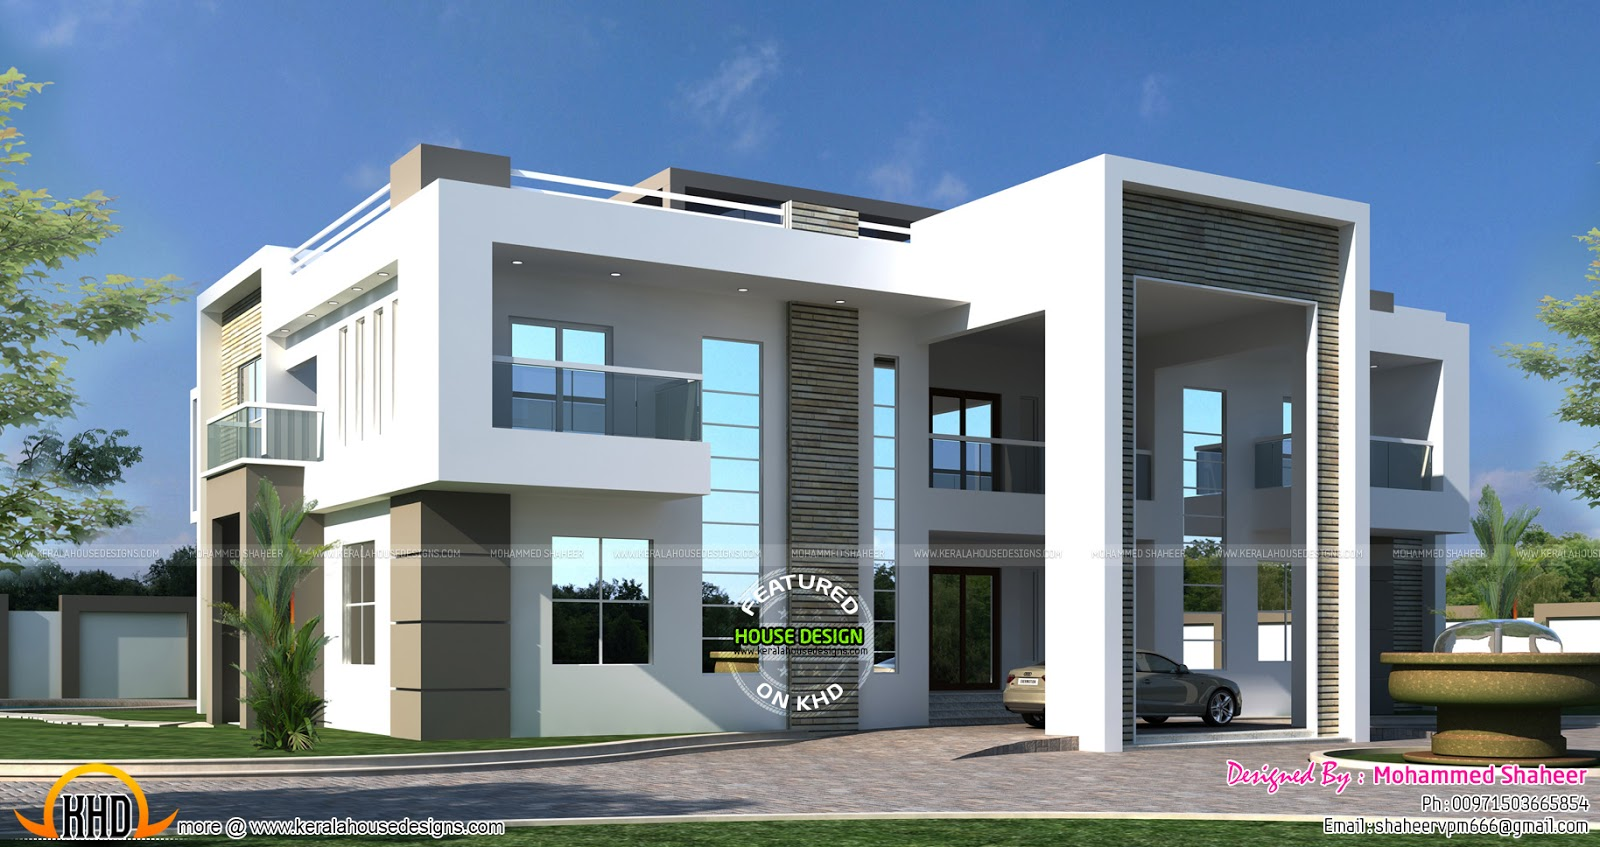 Flat roof arabian house plan kerala home design and for Best modern house design